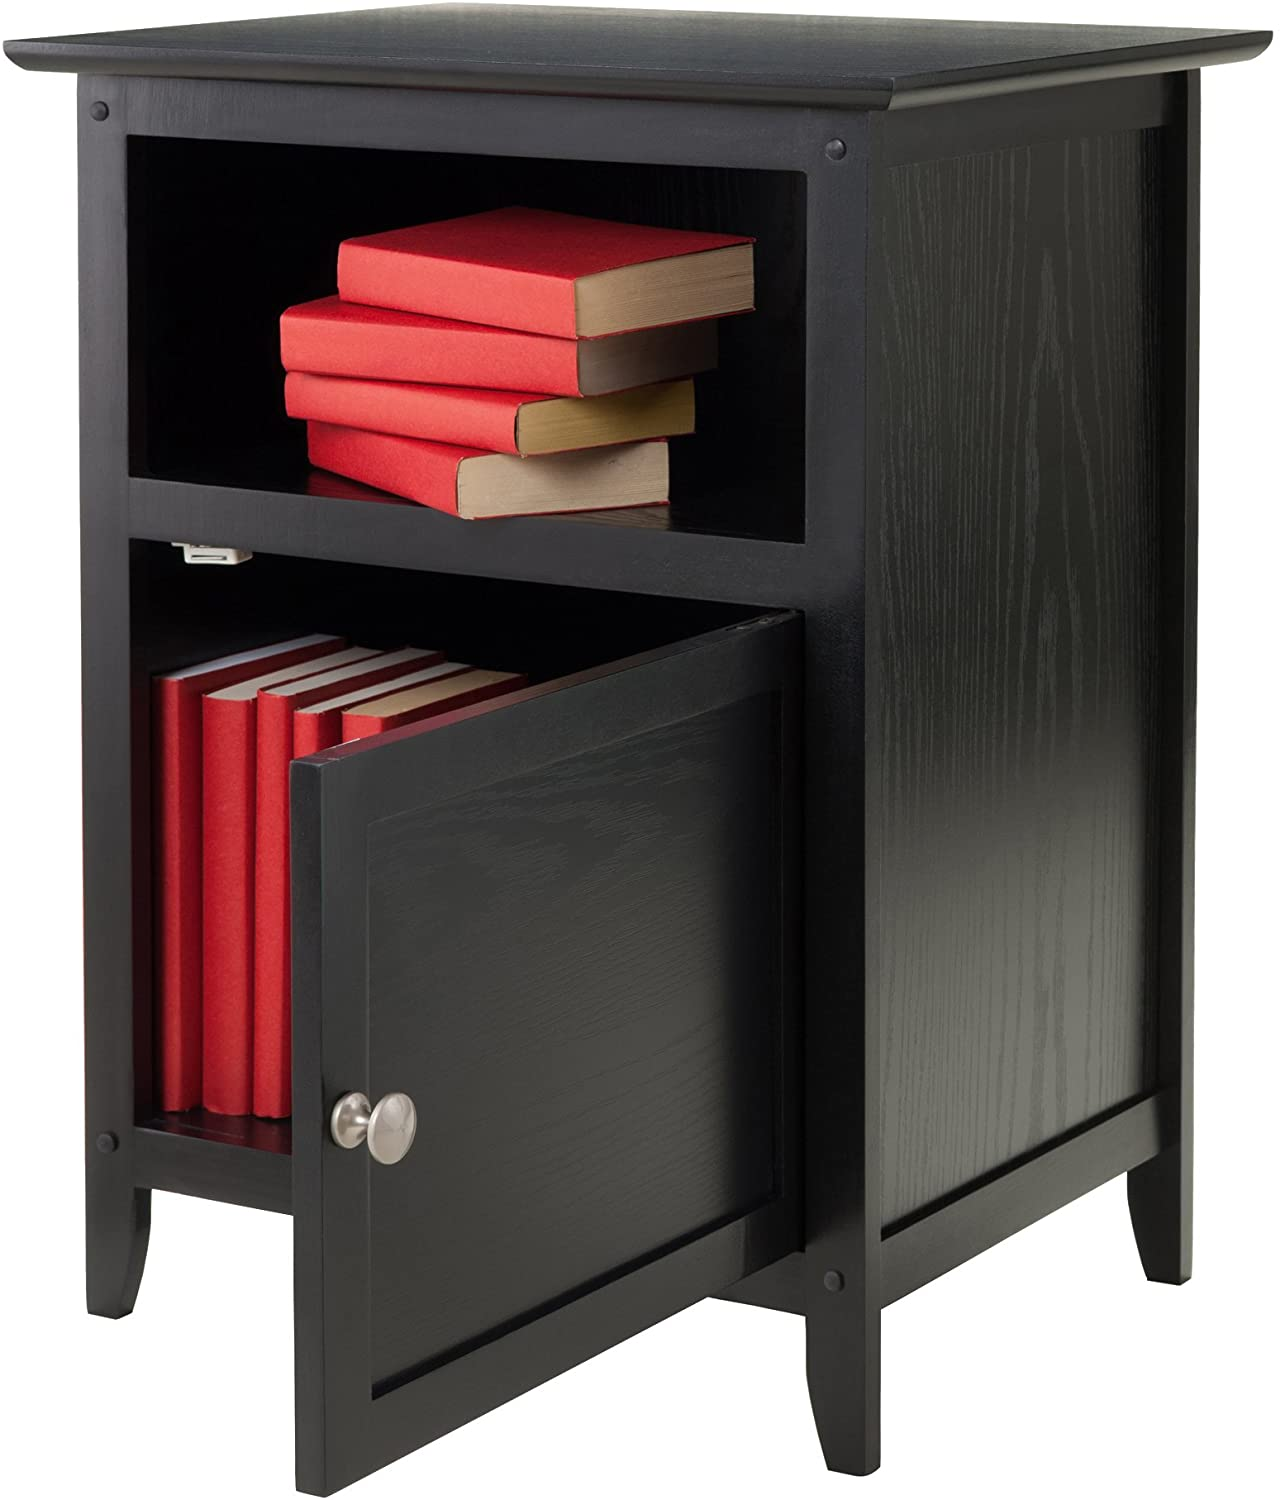 Winsome Wood Henry Accent Table, Black: Furniture & Decor